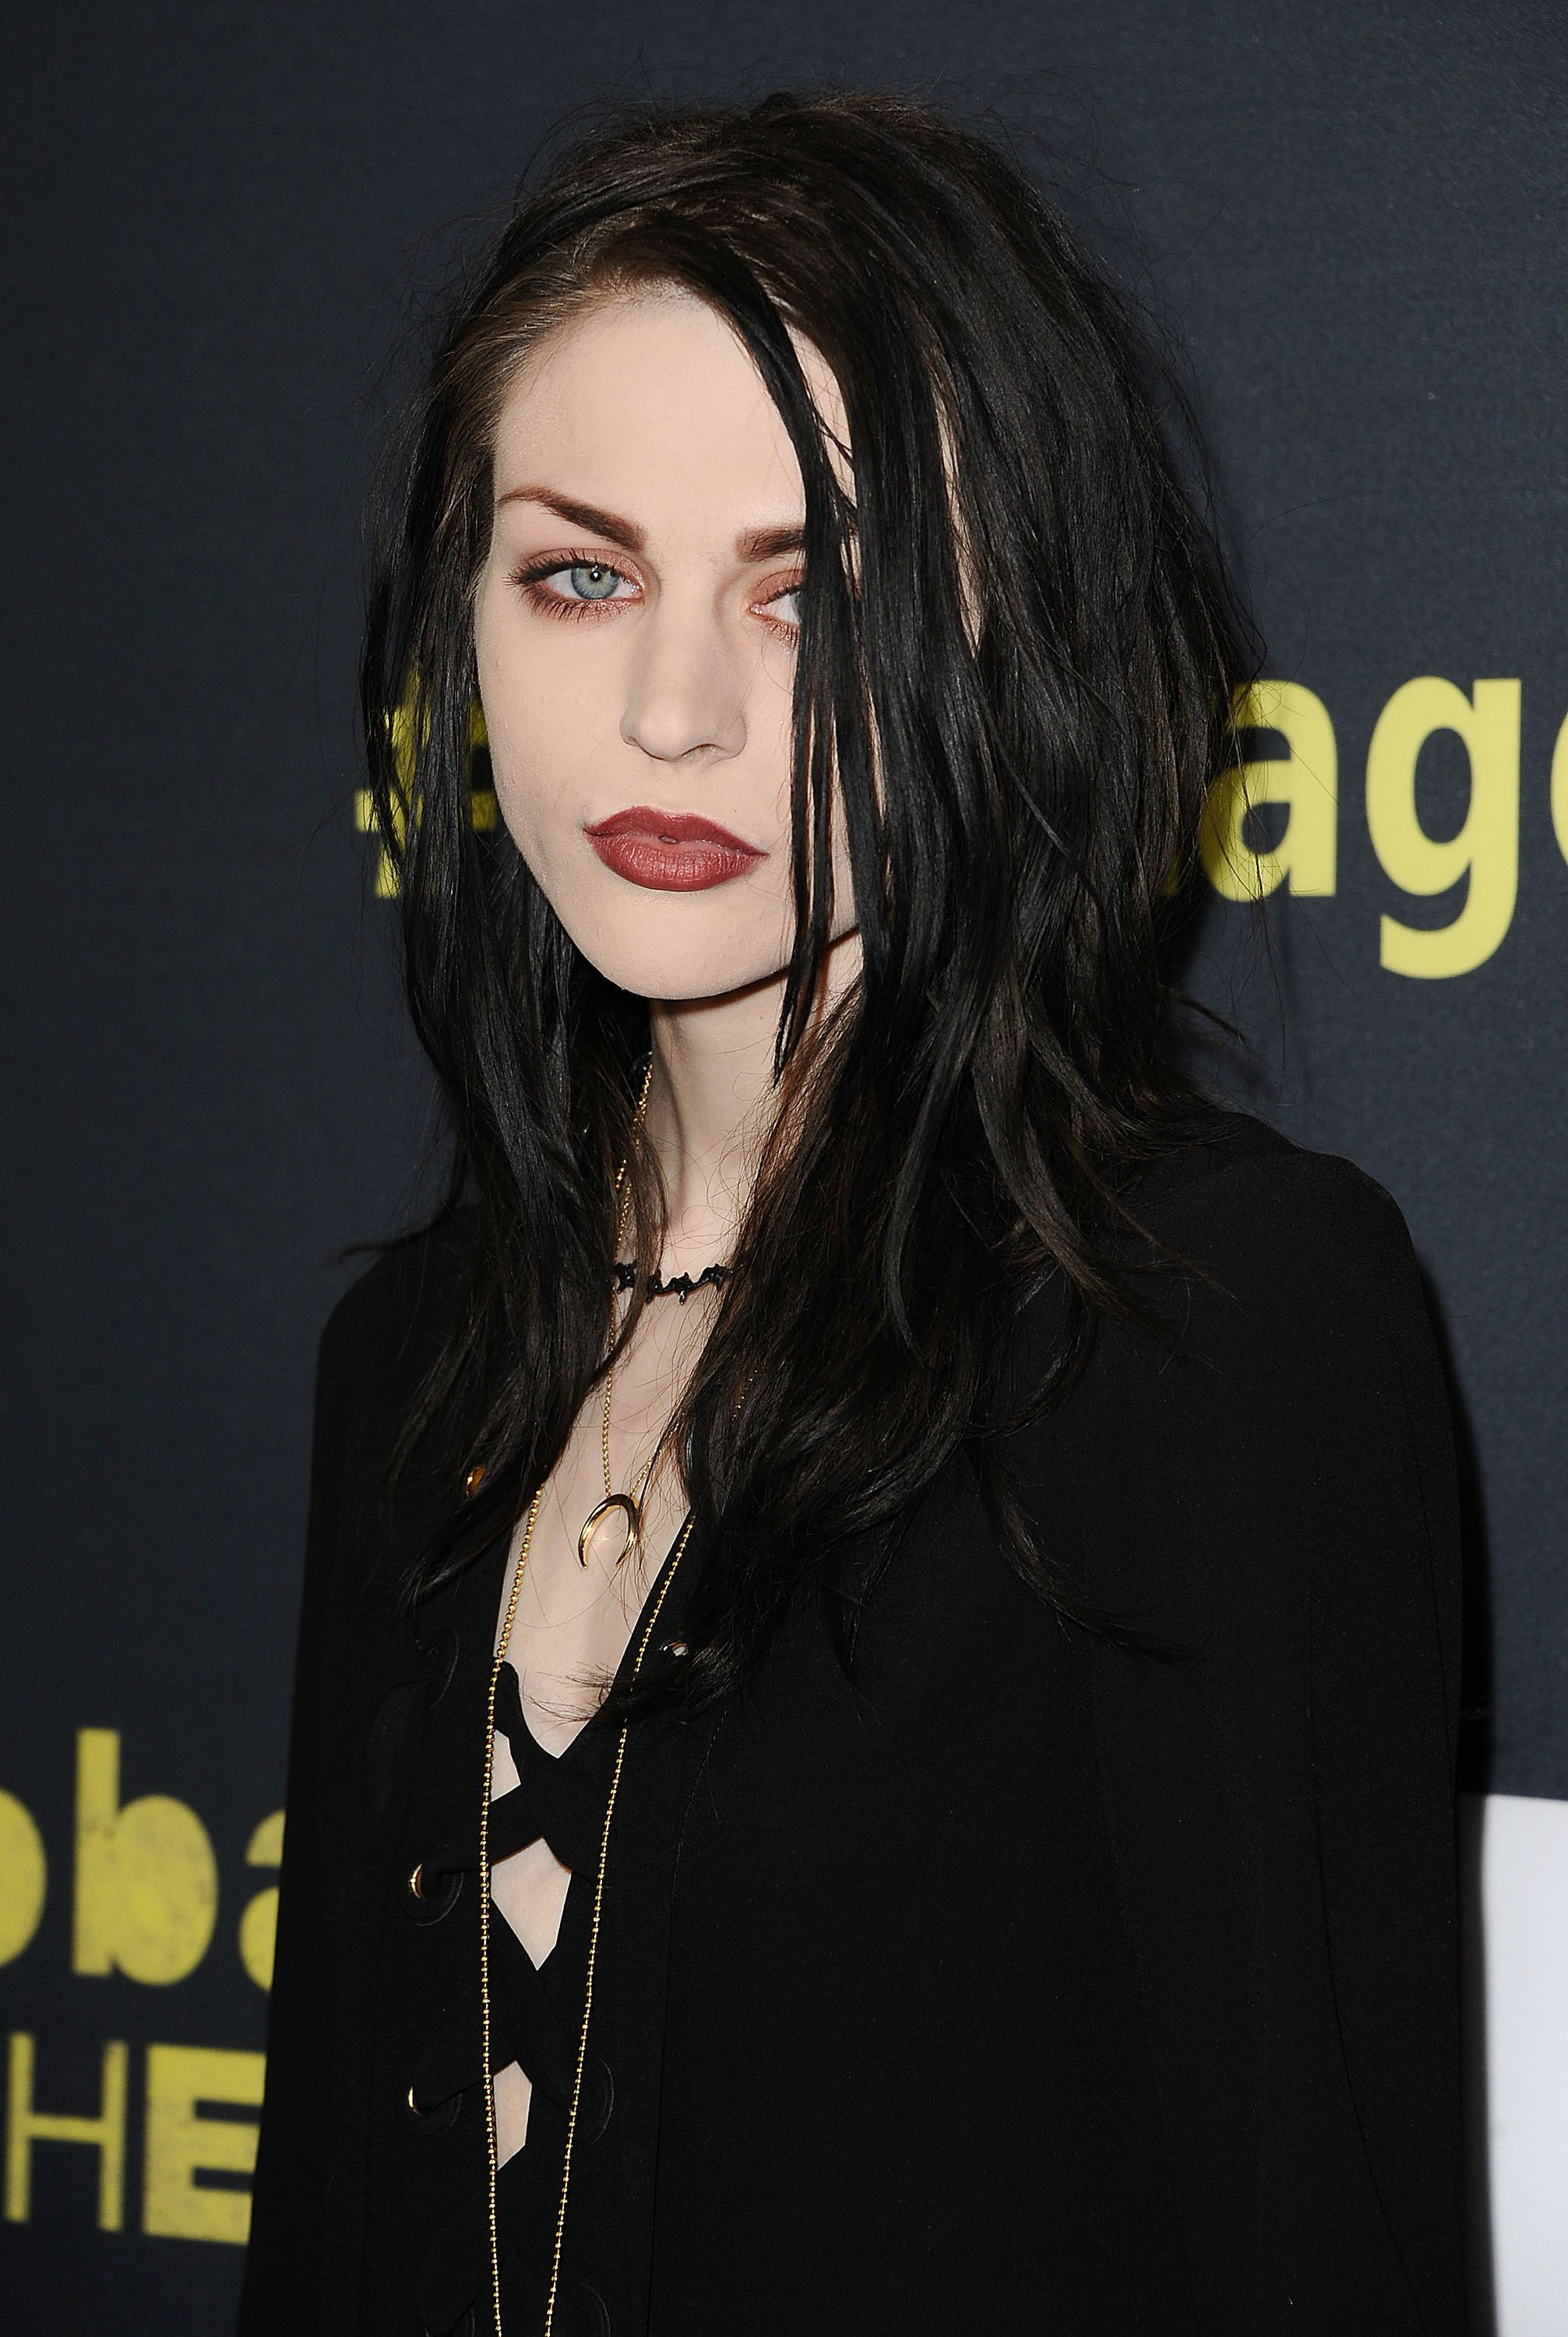 """Frances Bean Cobain at the premiere of HBO's """"Kurt Cobain: Montage Of Heck"""" in 2015 in Hollywood, California 